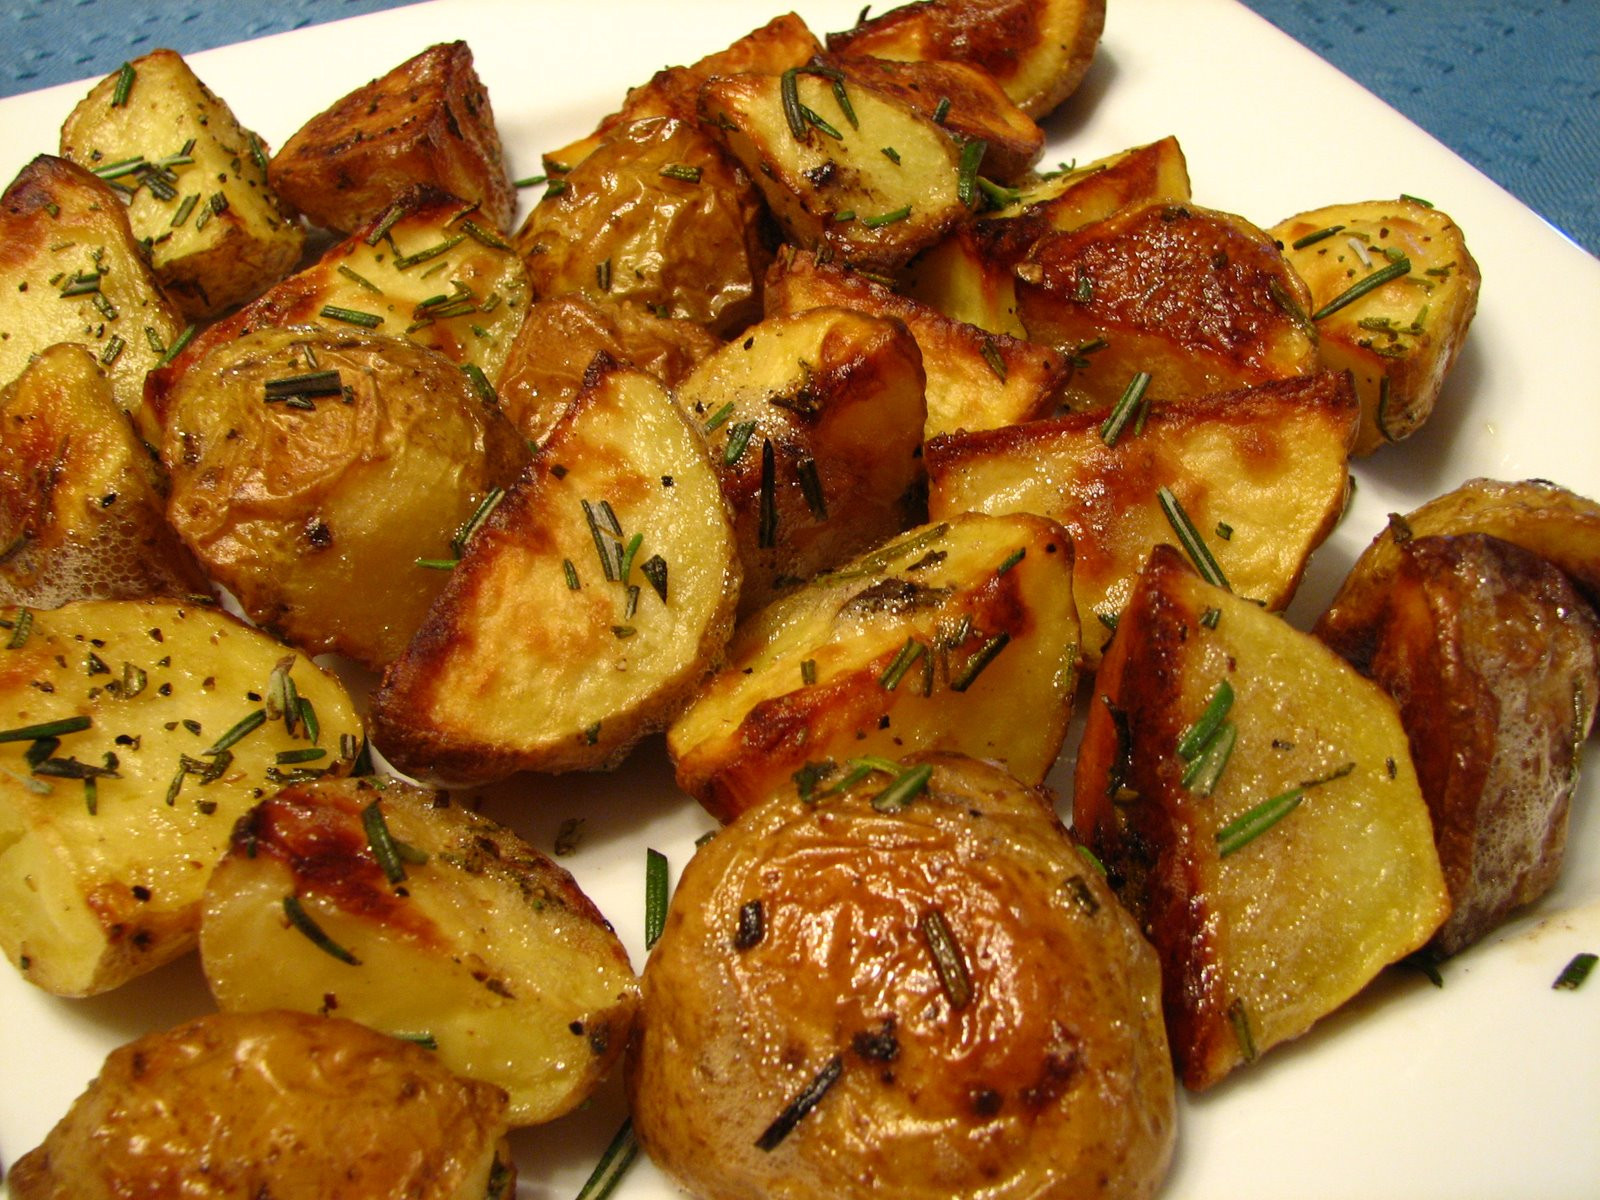 Baked Potato Recipe Oven  how to cook a baked potato in the oven